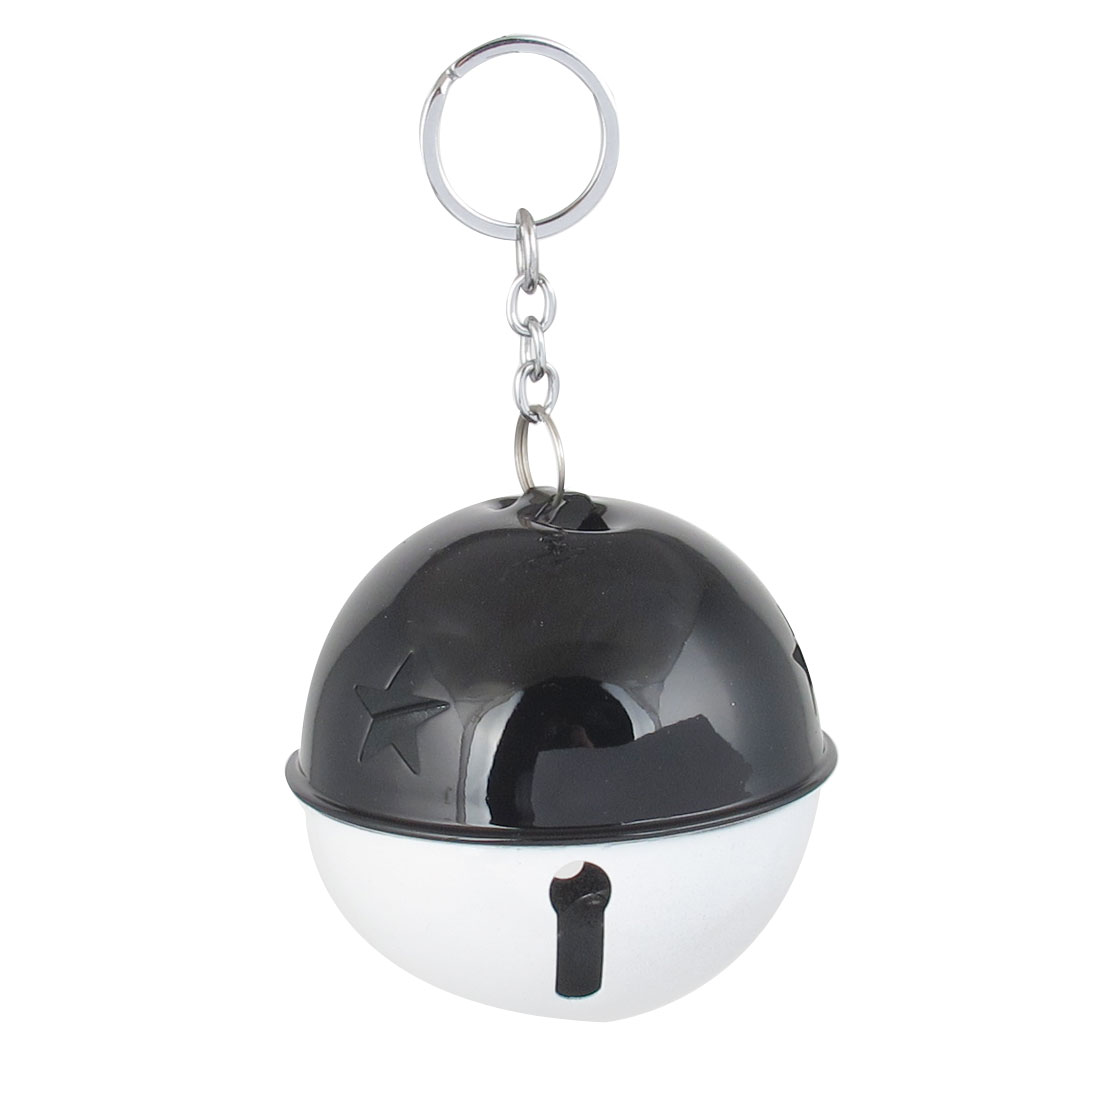 80mm Diameter White Black Metal Keychain Split Hollow Out Design Ring Bell Ornament for Xmas Celebration Case Backpack Purse